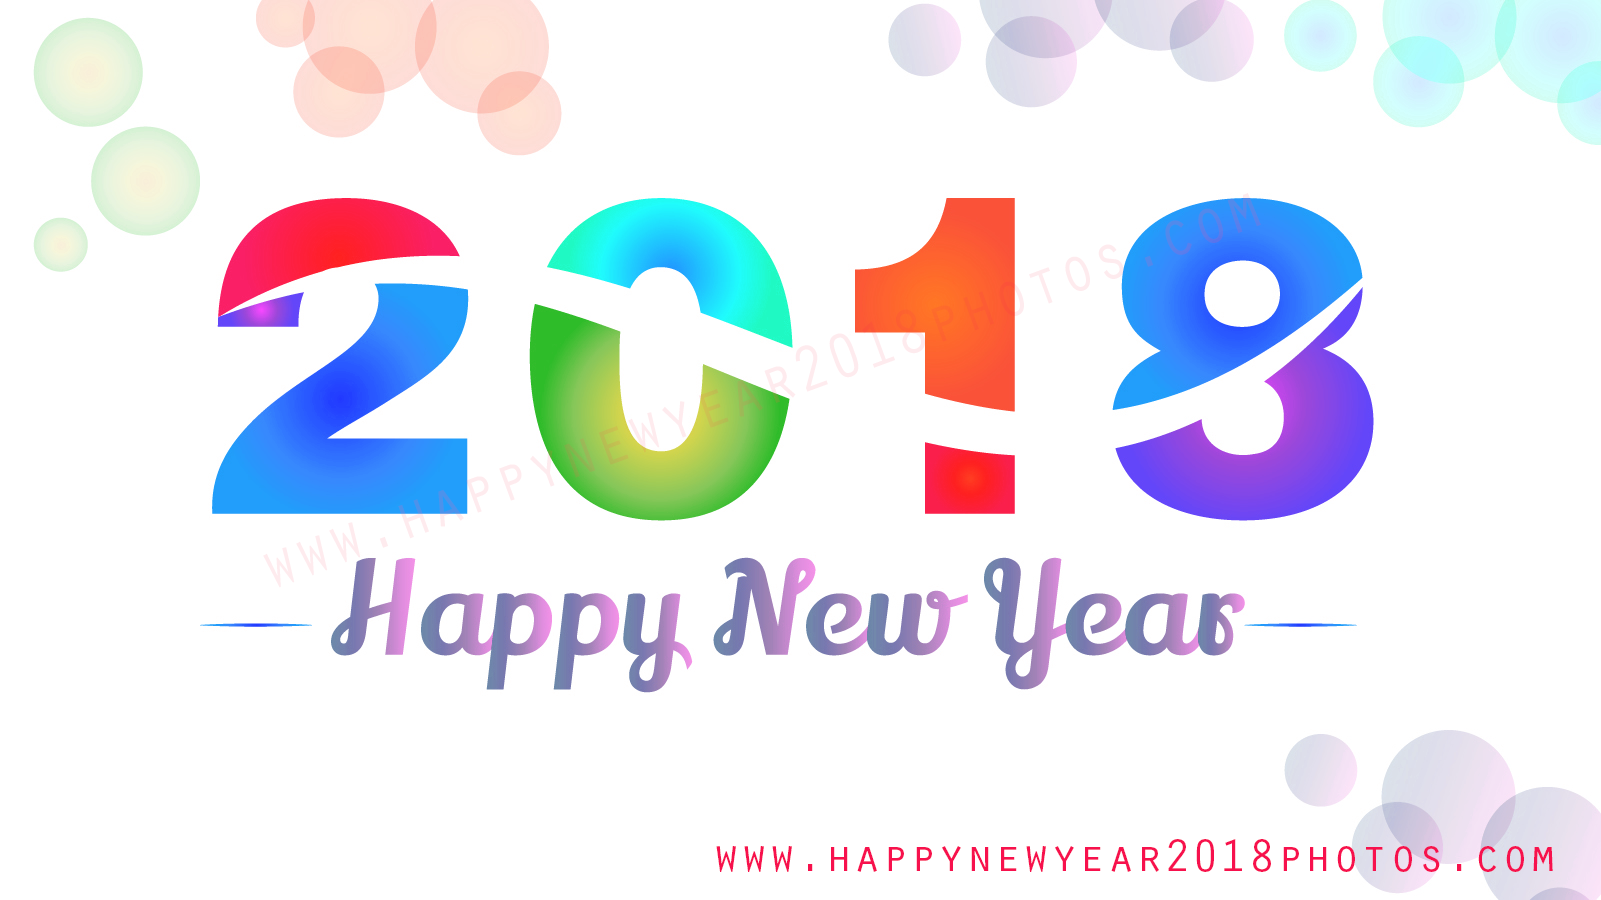 merry christmas wishes and motivational happy new year quotes 2018 happy new year 2018 png